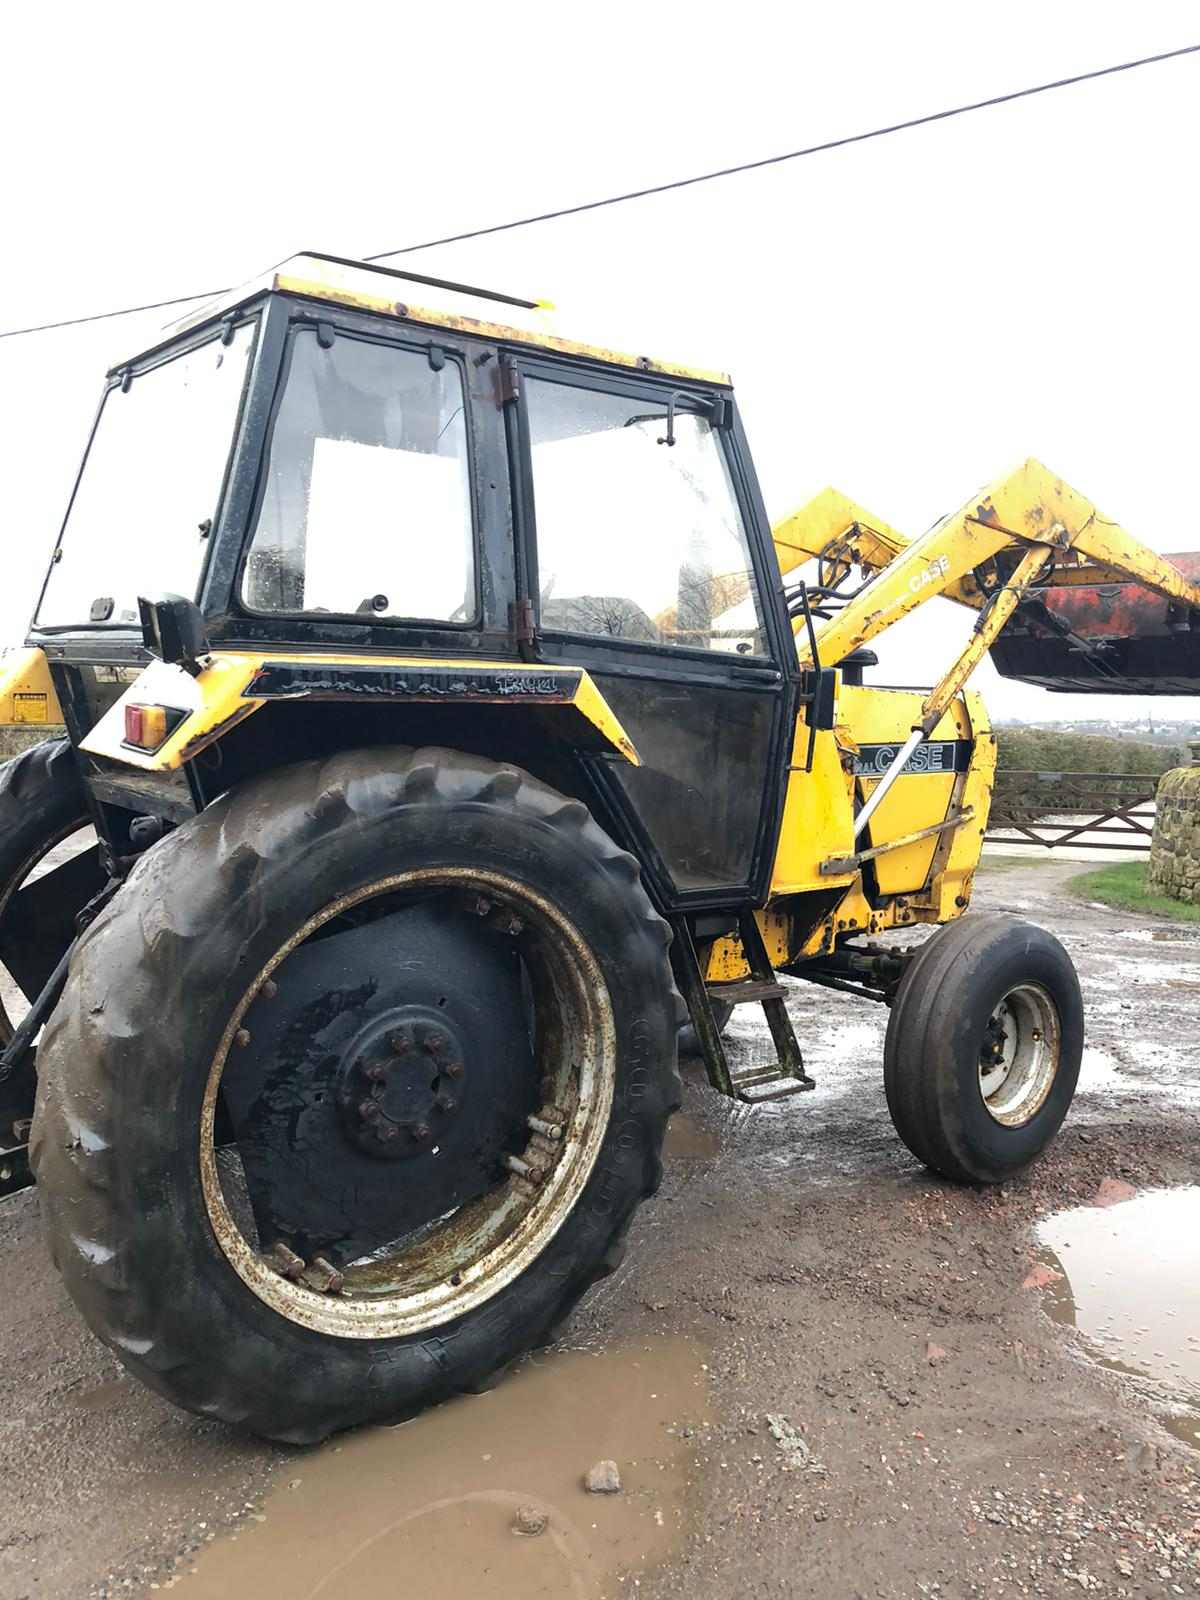 Lot 38 - CASE INTERNATIONAL 1394 LOADER TRACTOR, RUNS AND WORKS WELL, 3 POINT LINKAGE, PTO WORKING, 774 HOURS